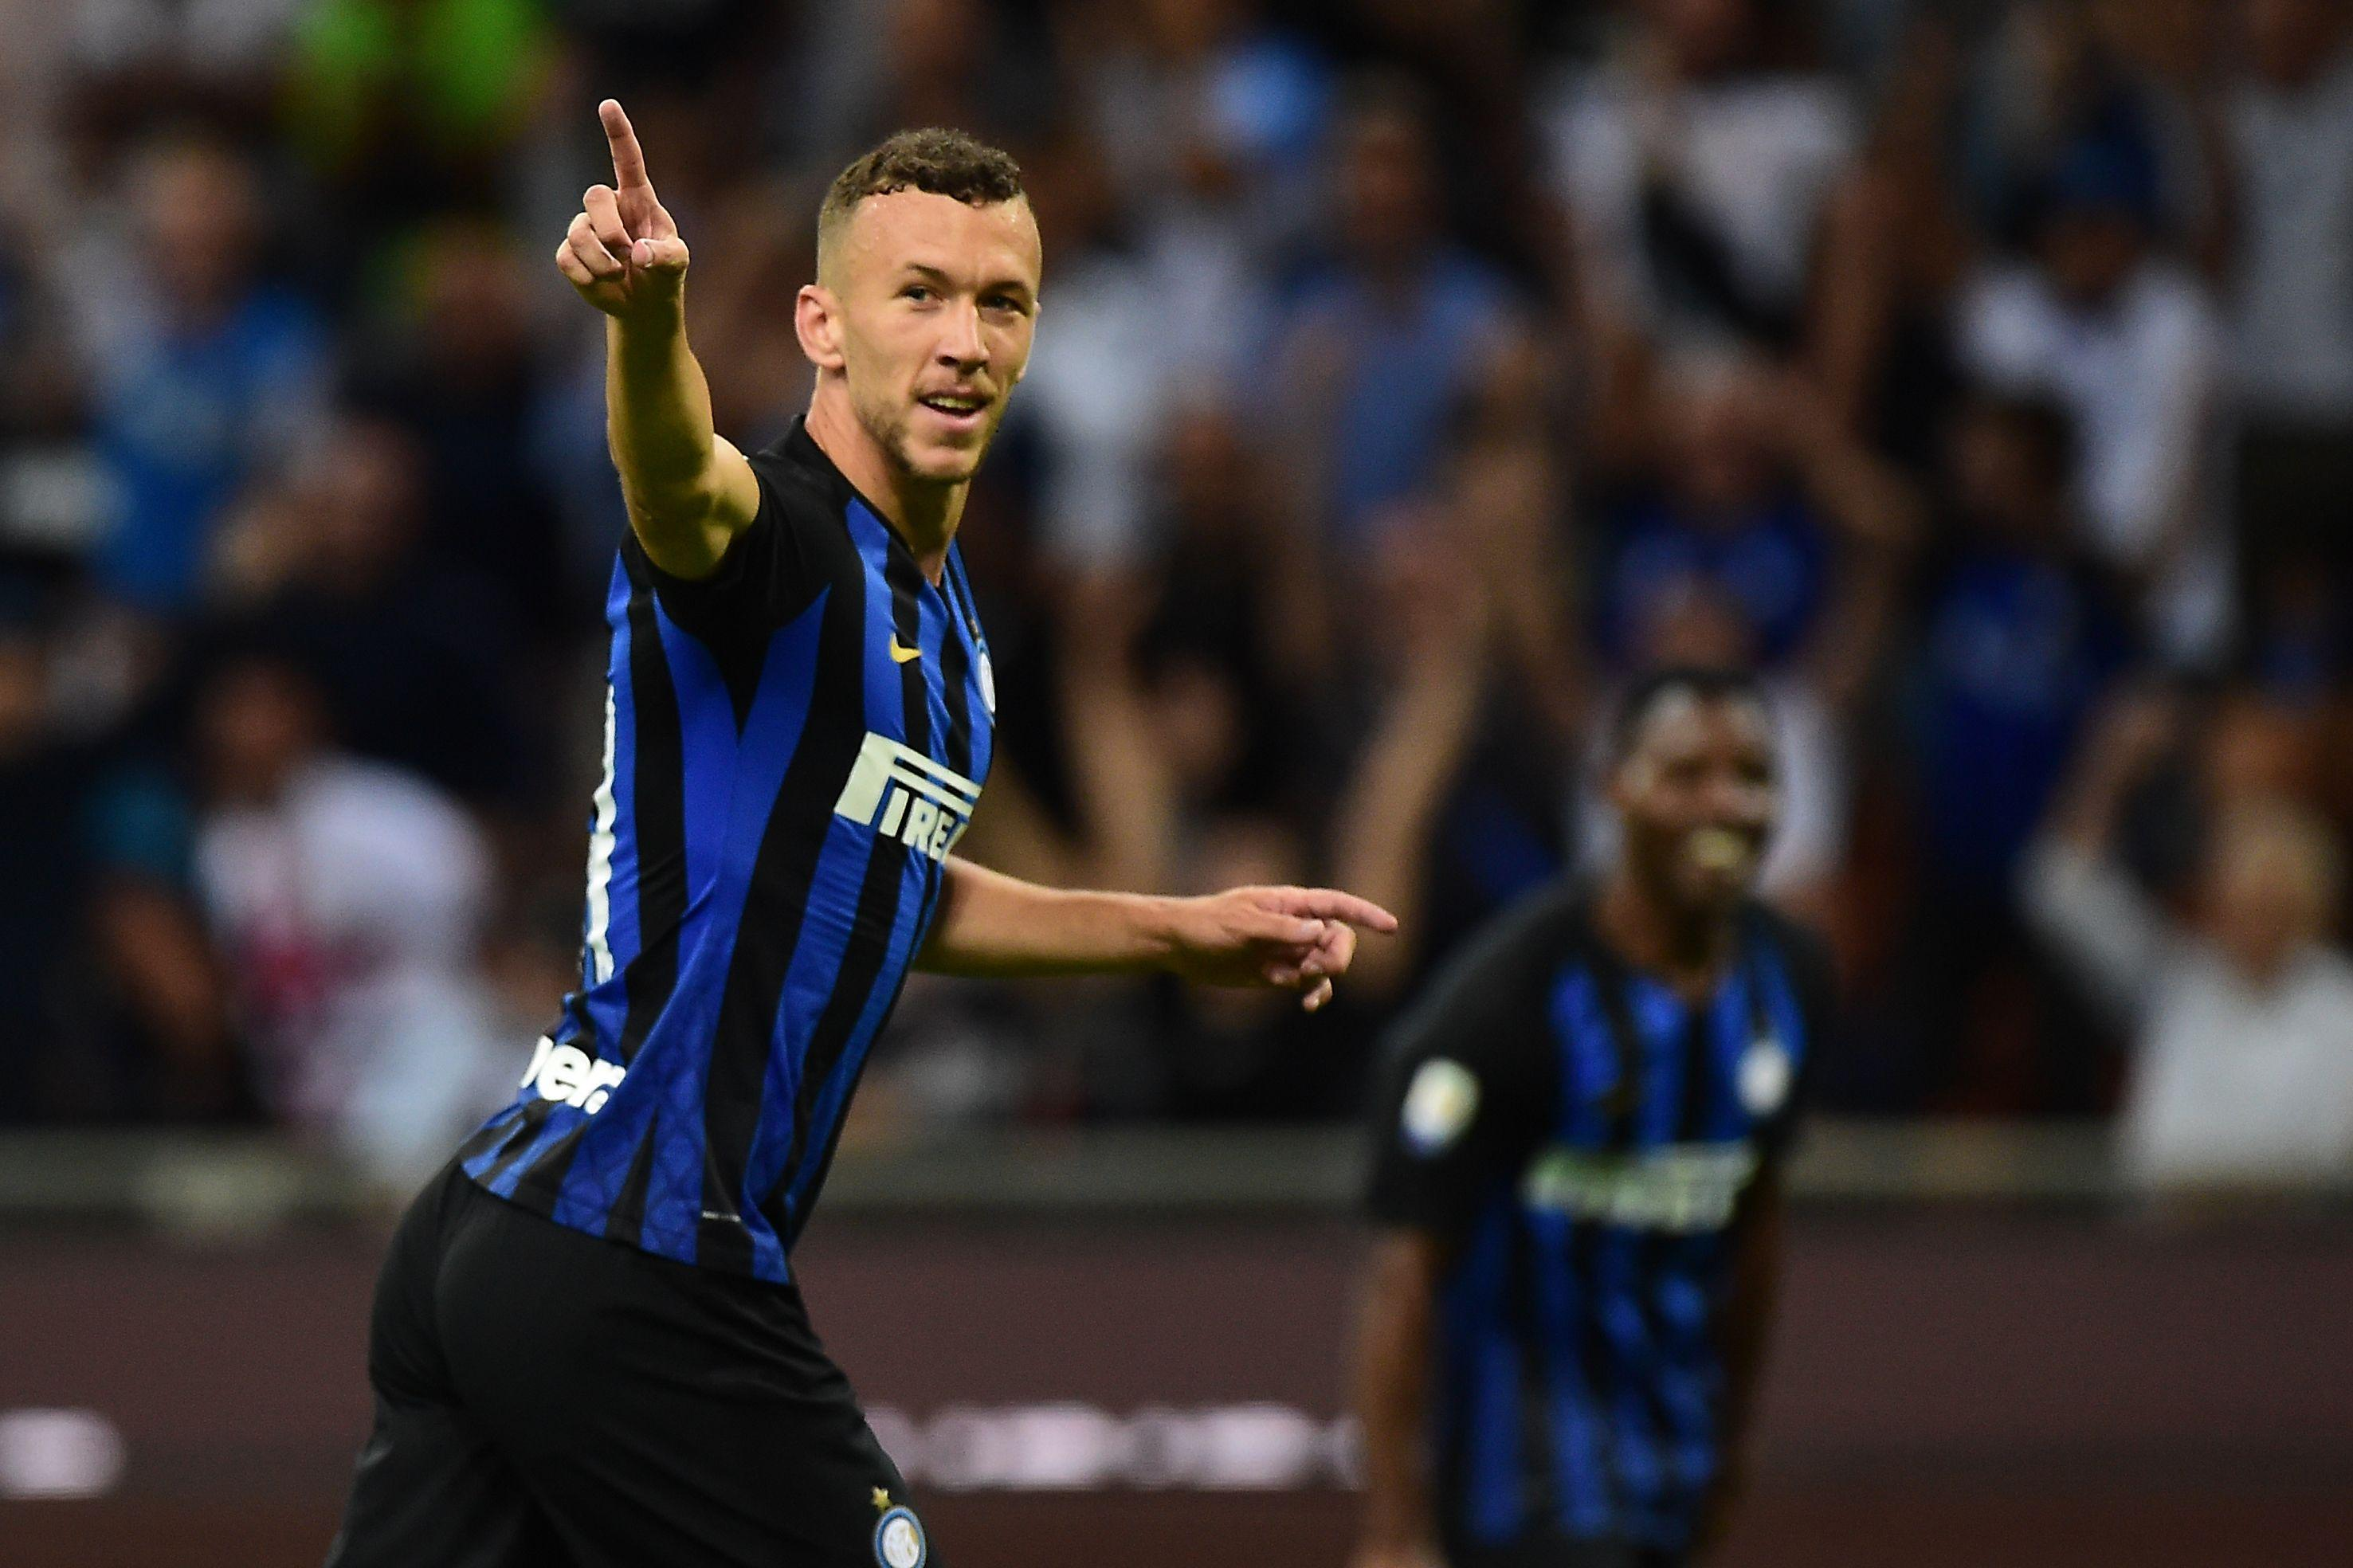 Ivan Perisic scored to put Inter Milan 2-0 up against Torino, but they were pegged back for a draw